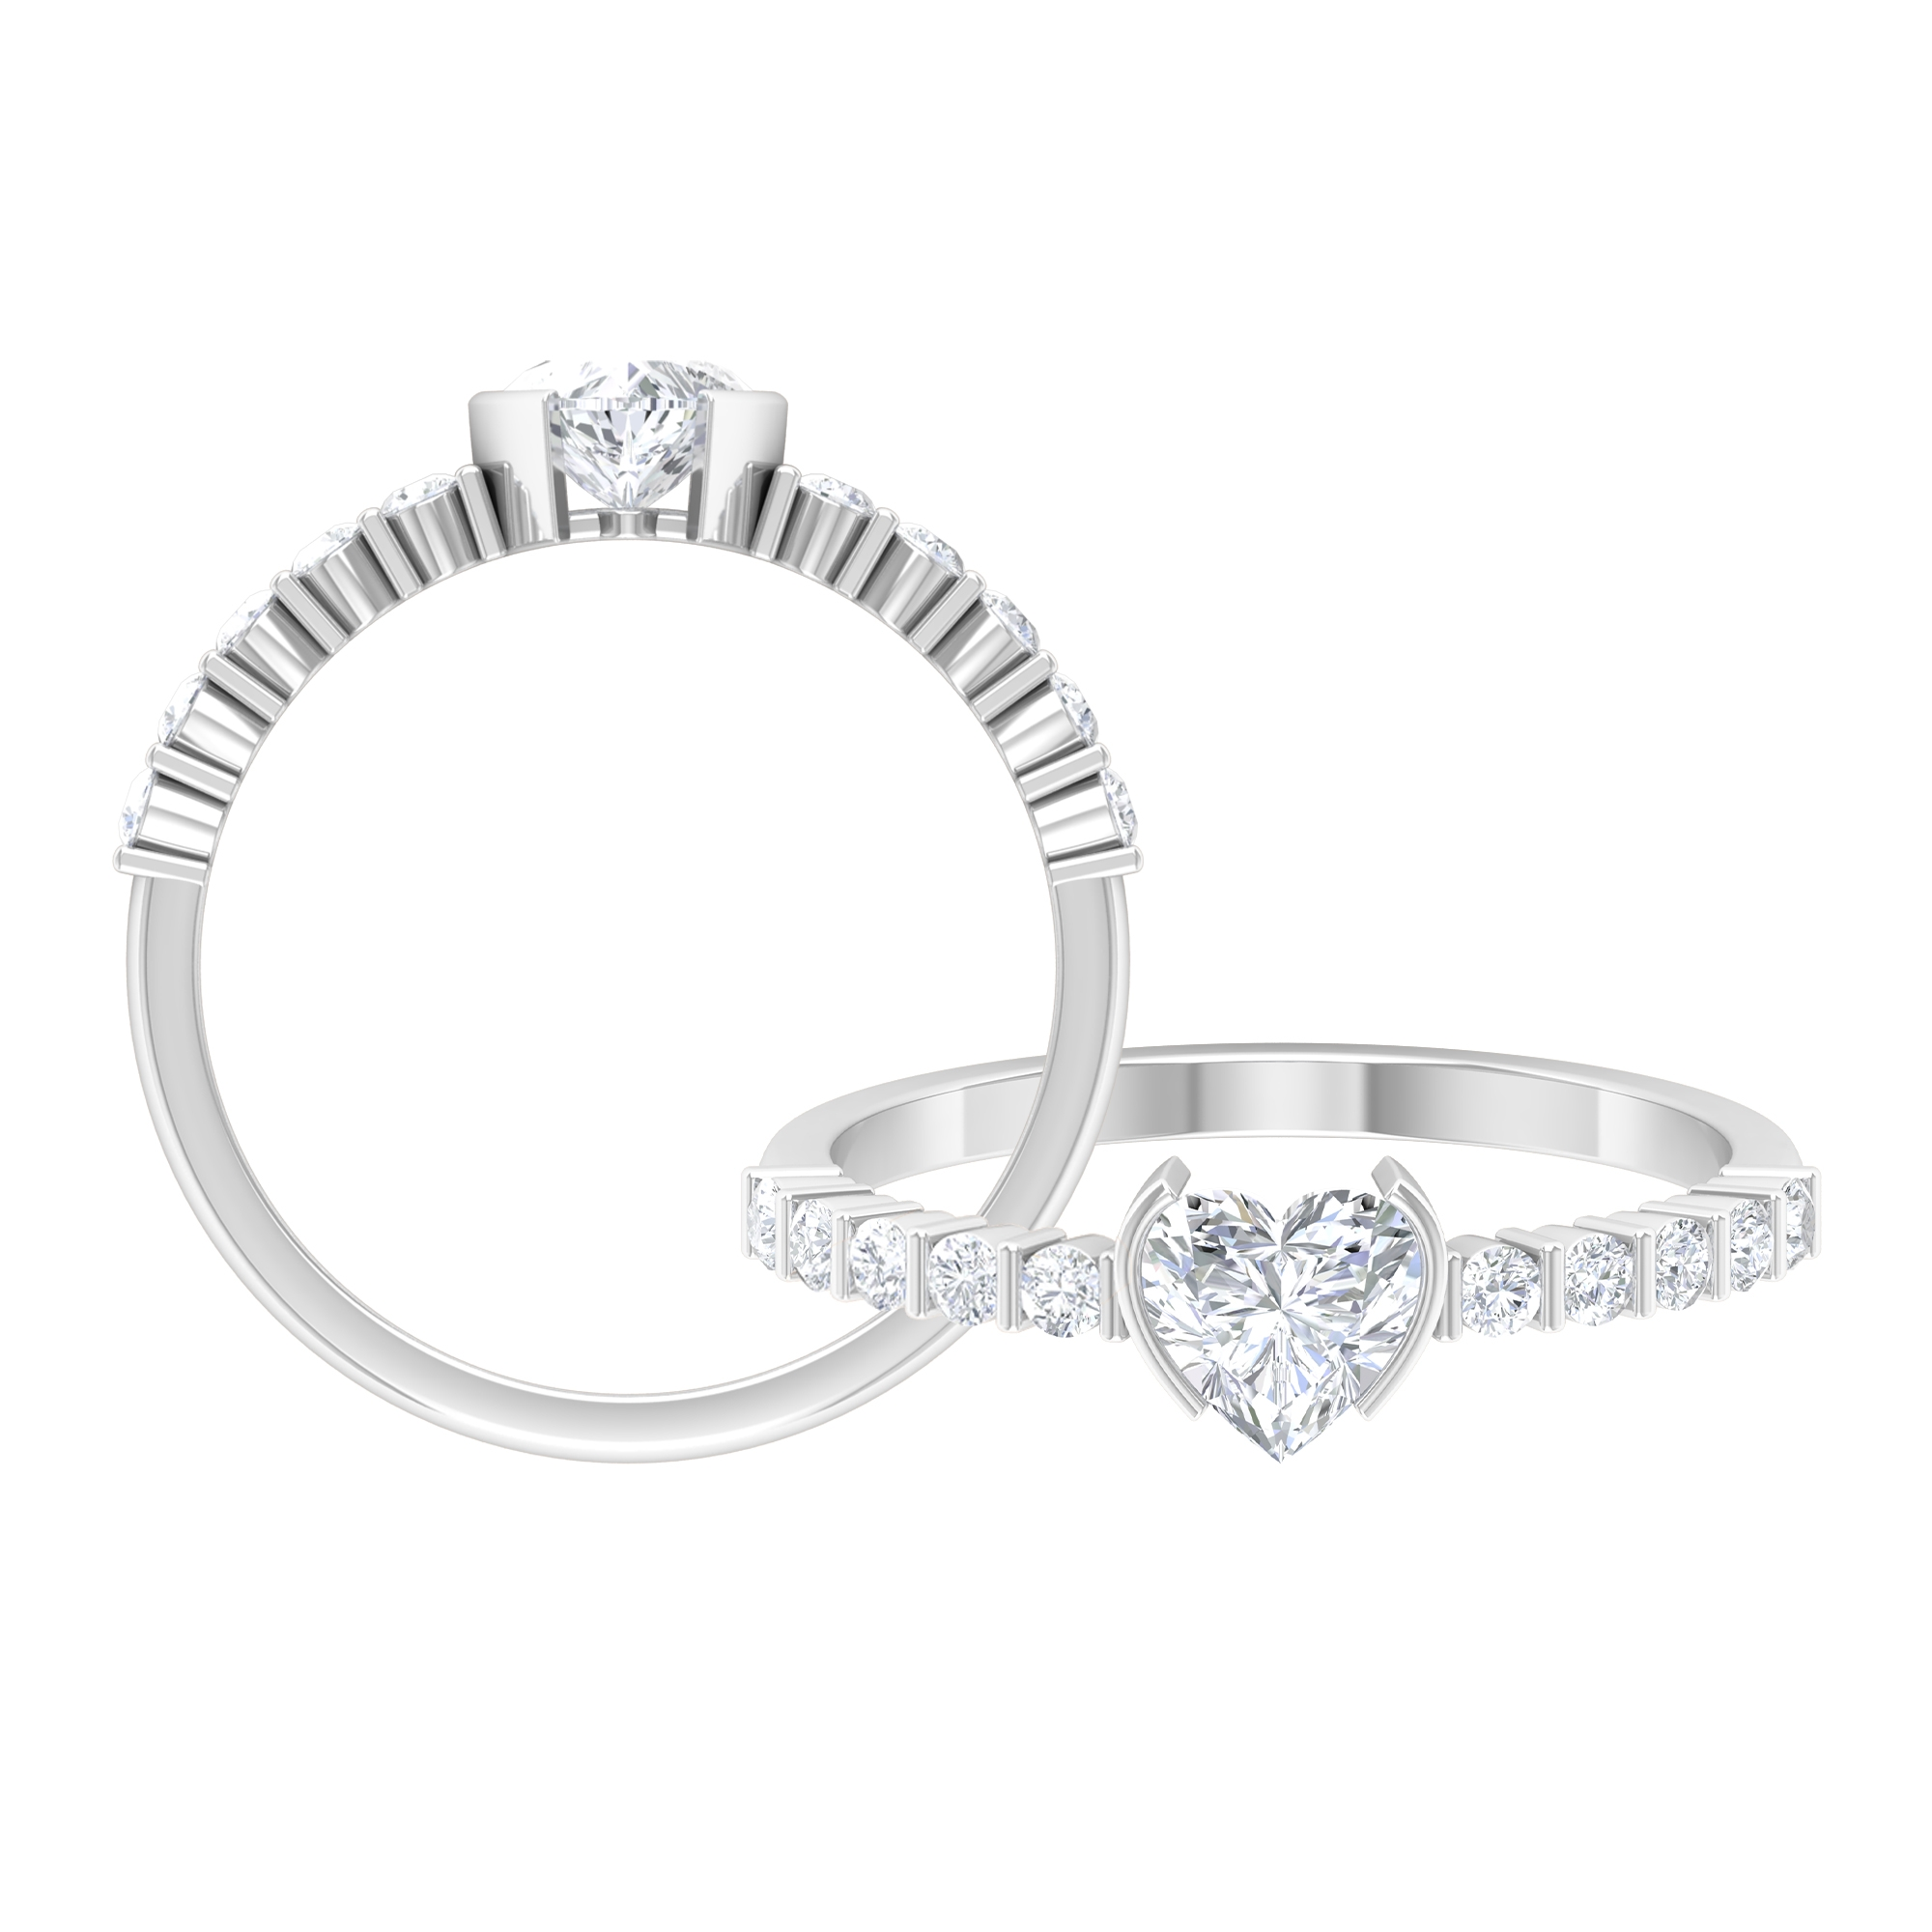 3/4 CT Heart Shape Diamond Solitaire Ring in Bar Setting with Side Stones